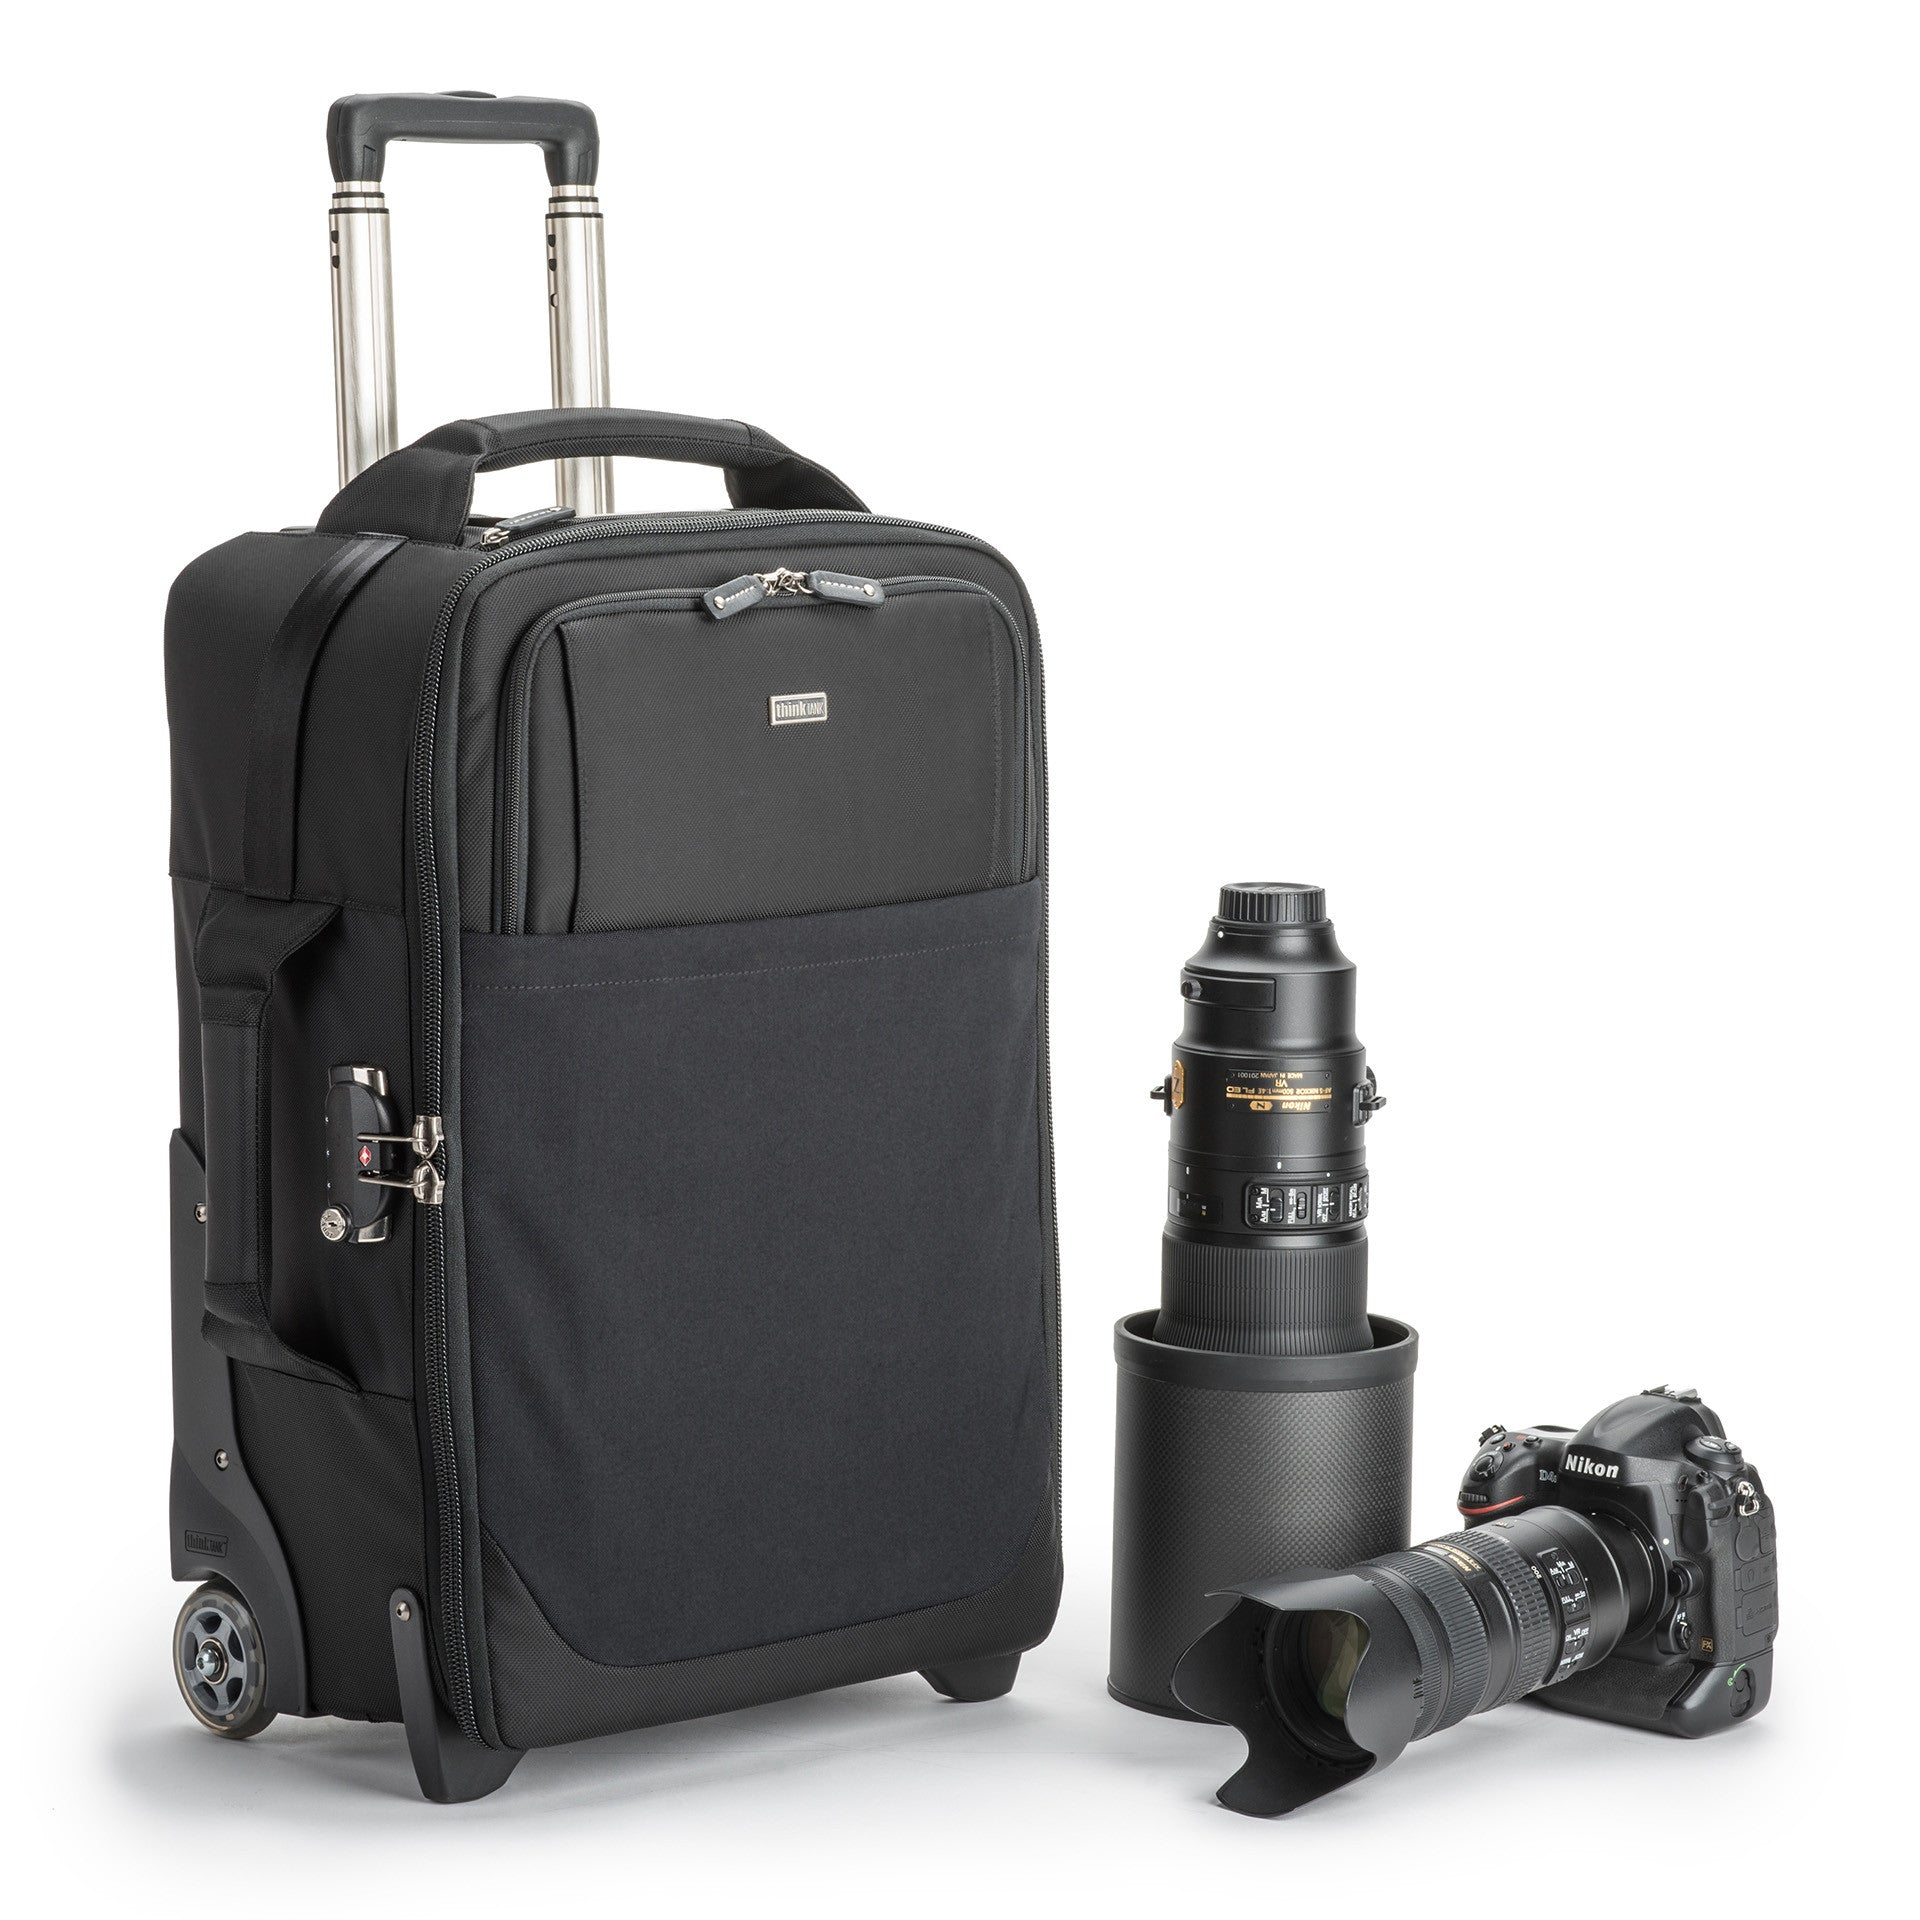 Third Generation of Award-winning Airport Rolling Camera Bags Released